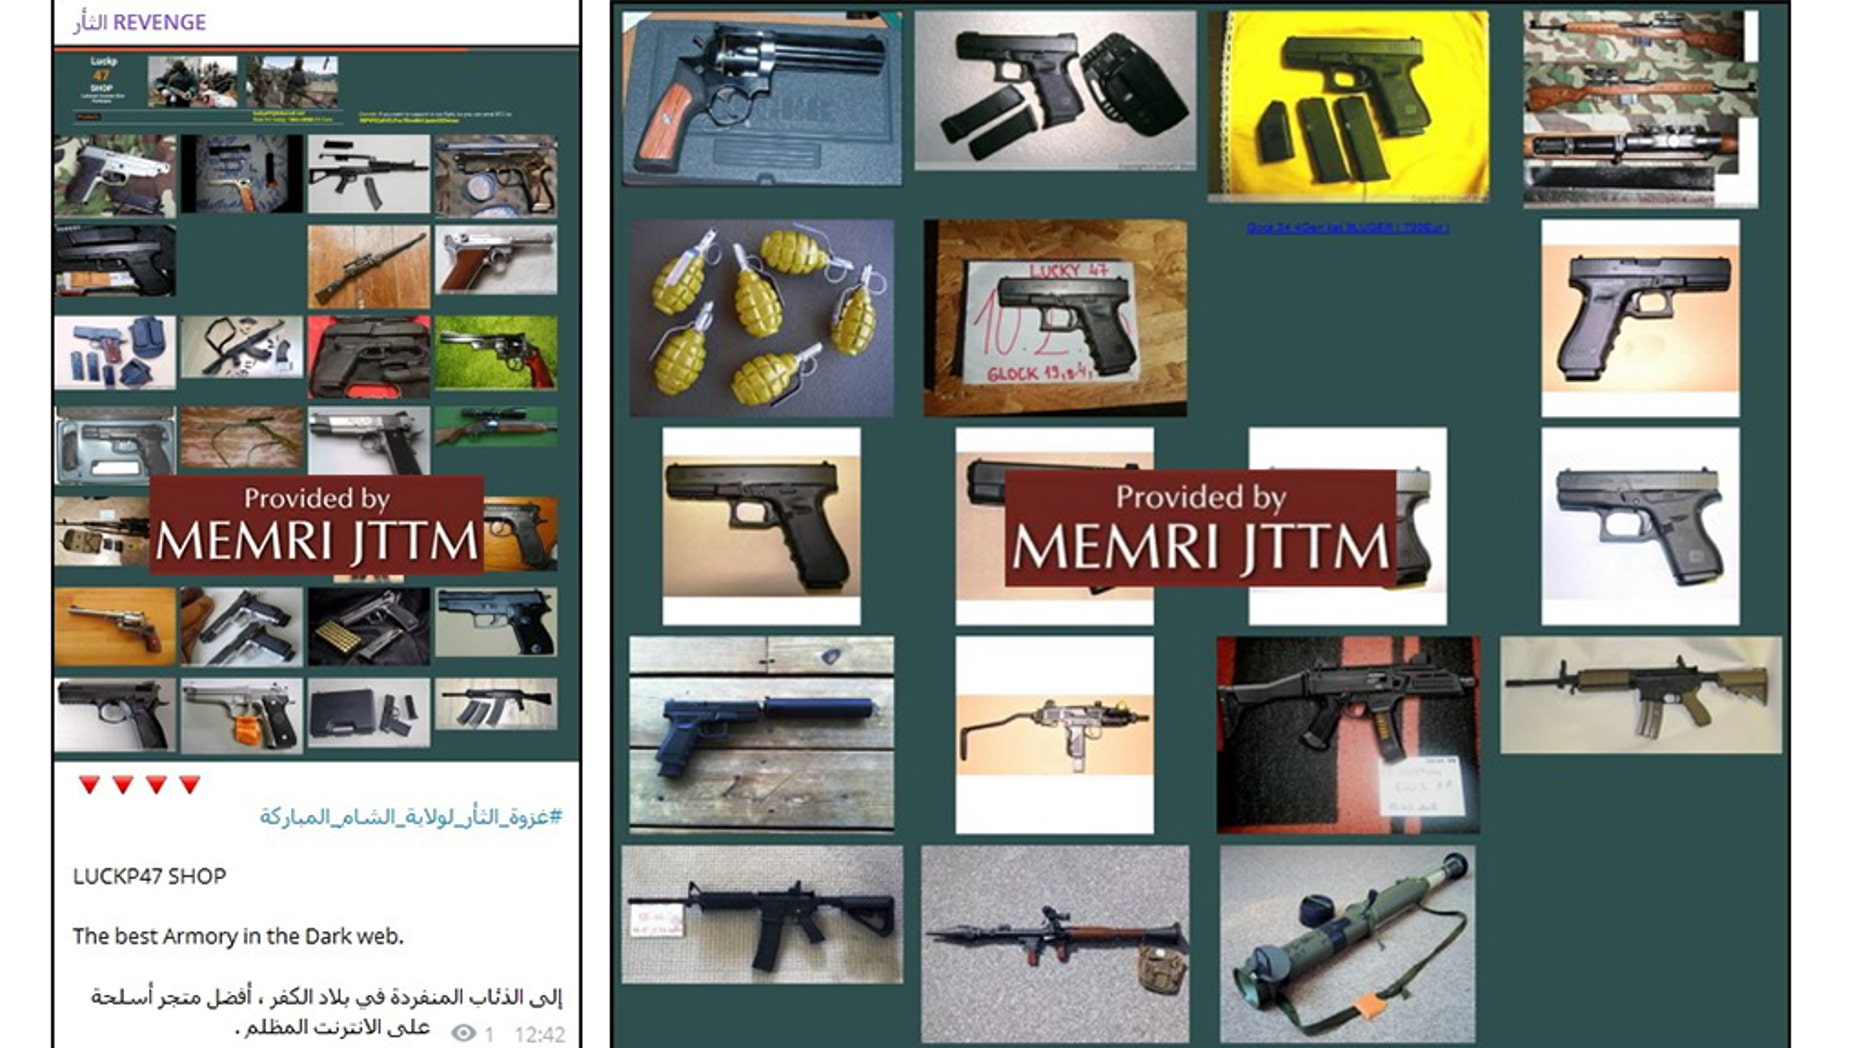 Westlake Legal Group luckp47-dark-web Pro-ISIS channel issues guide to buying weapons on dark web, using them against Westerners fox-news/world/terrorism/isis fox-news/world/terrorism fox-news/tech/topics/software fox-news/tech/technologies fox news fnc/world fnc df569c7c-b233-597a-bdde-a88c644b62eb Barnini Chakraborty article